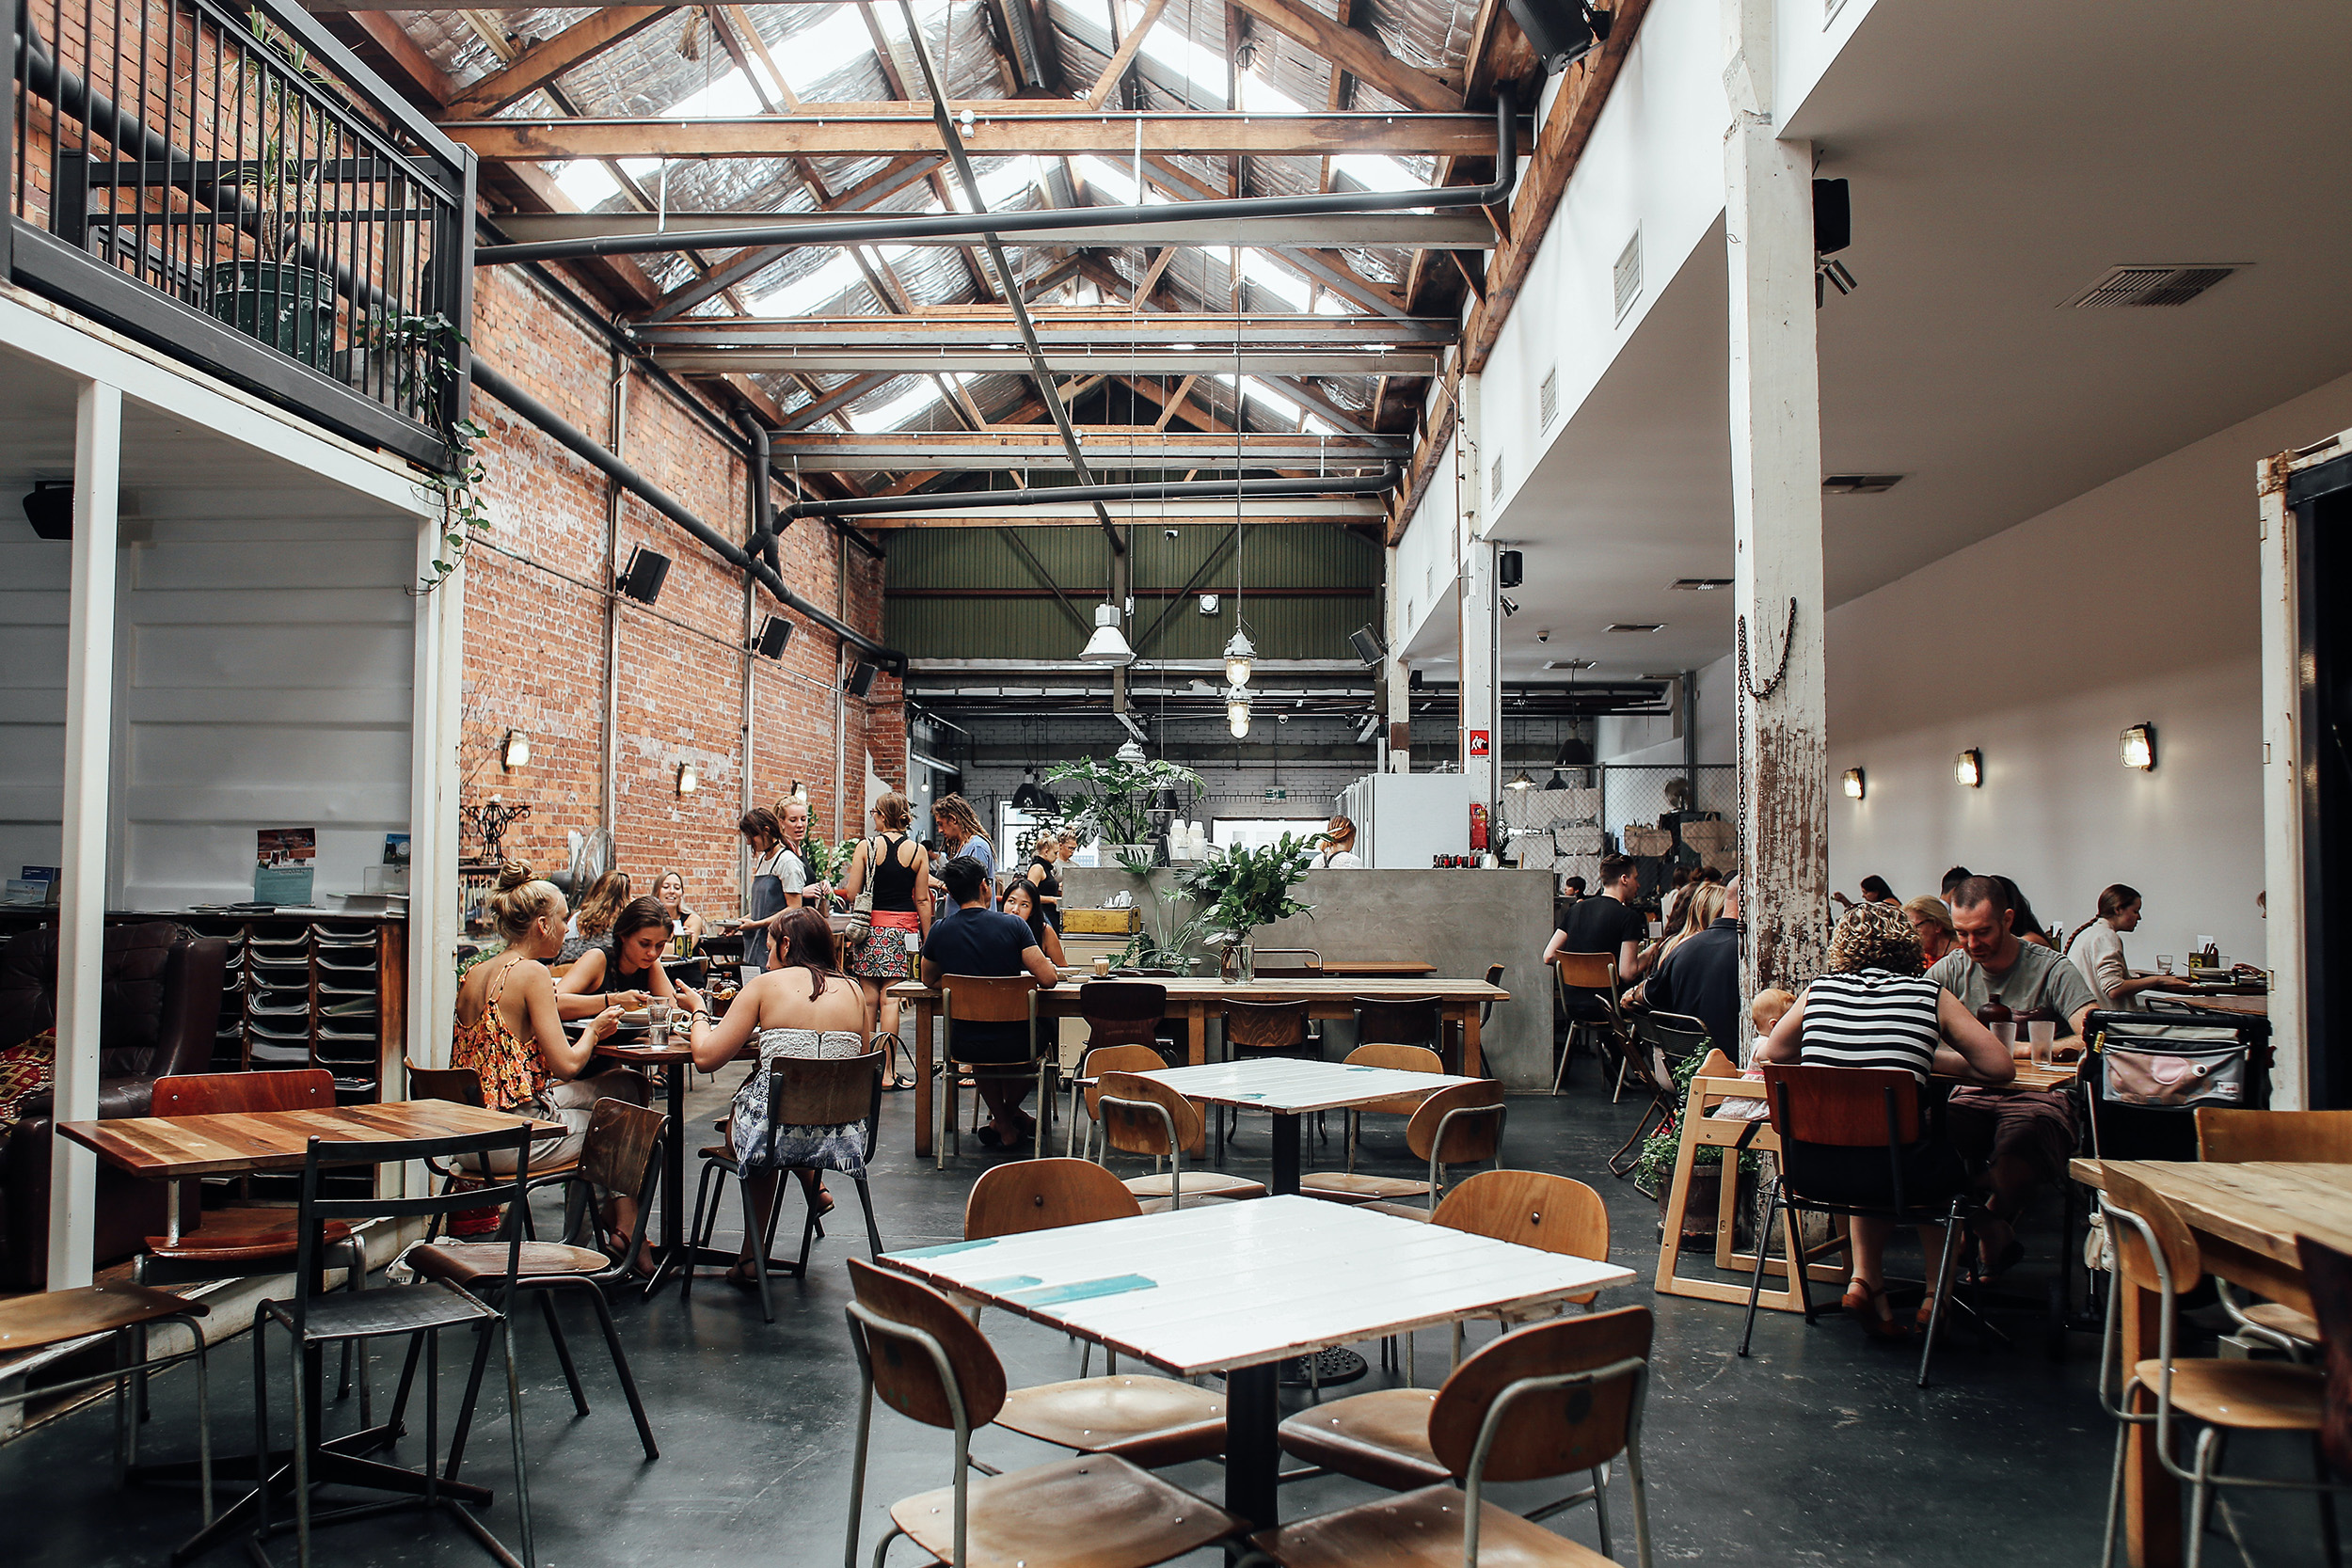 Independent Restaurant Coalition is on a mission to save restaurants like the one photographed after enduring the hardships of COVID-19.